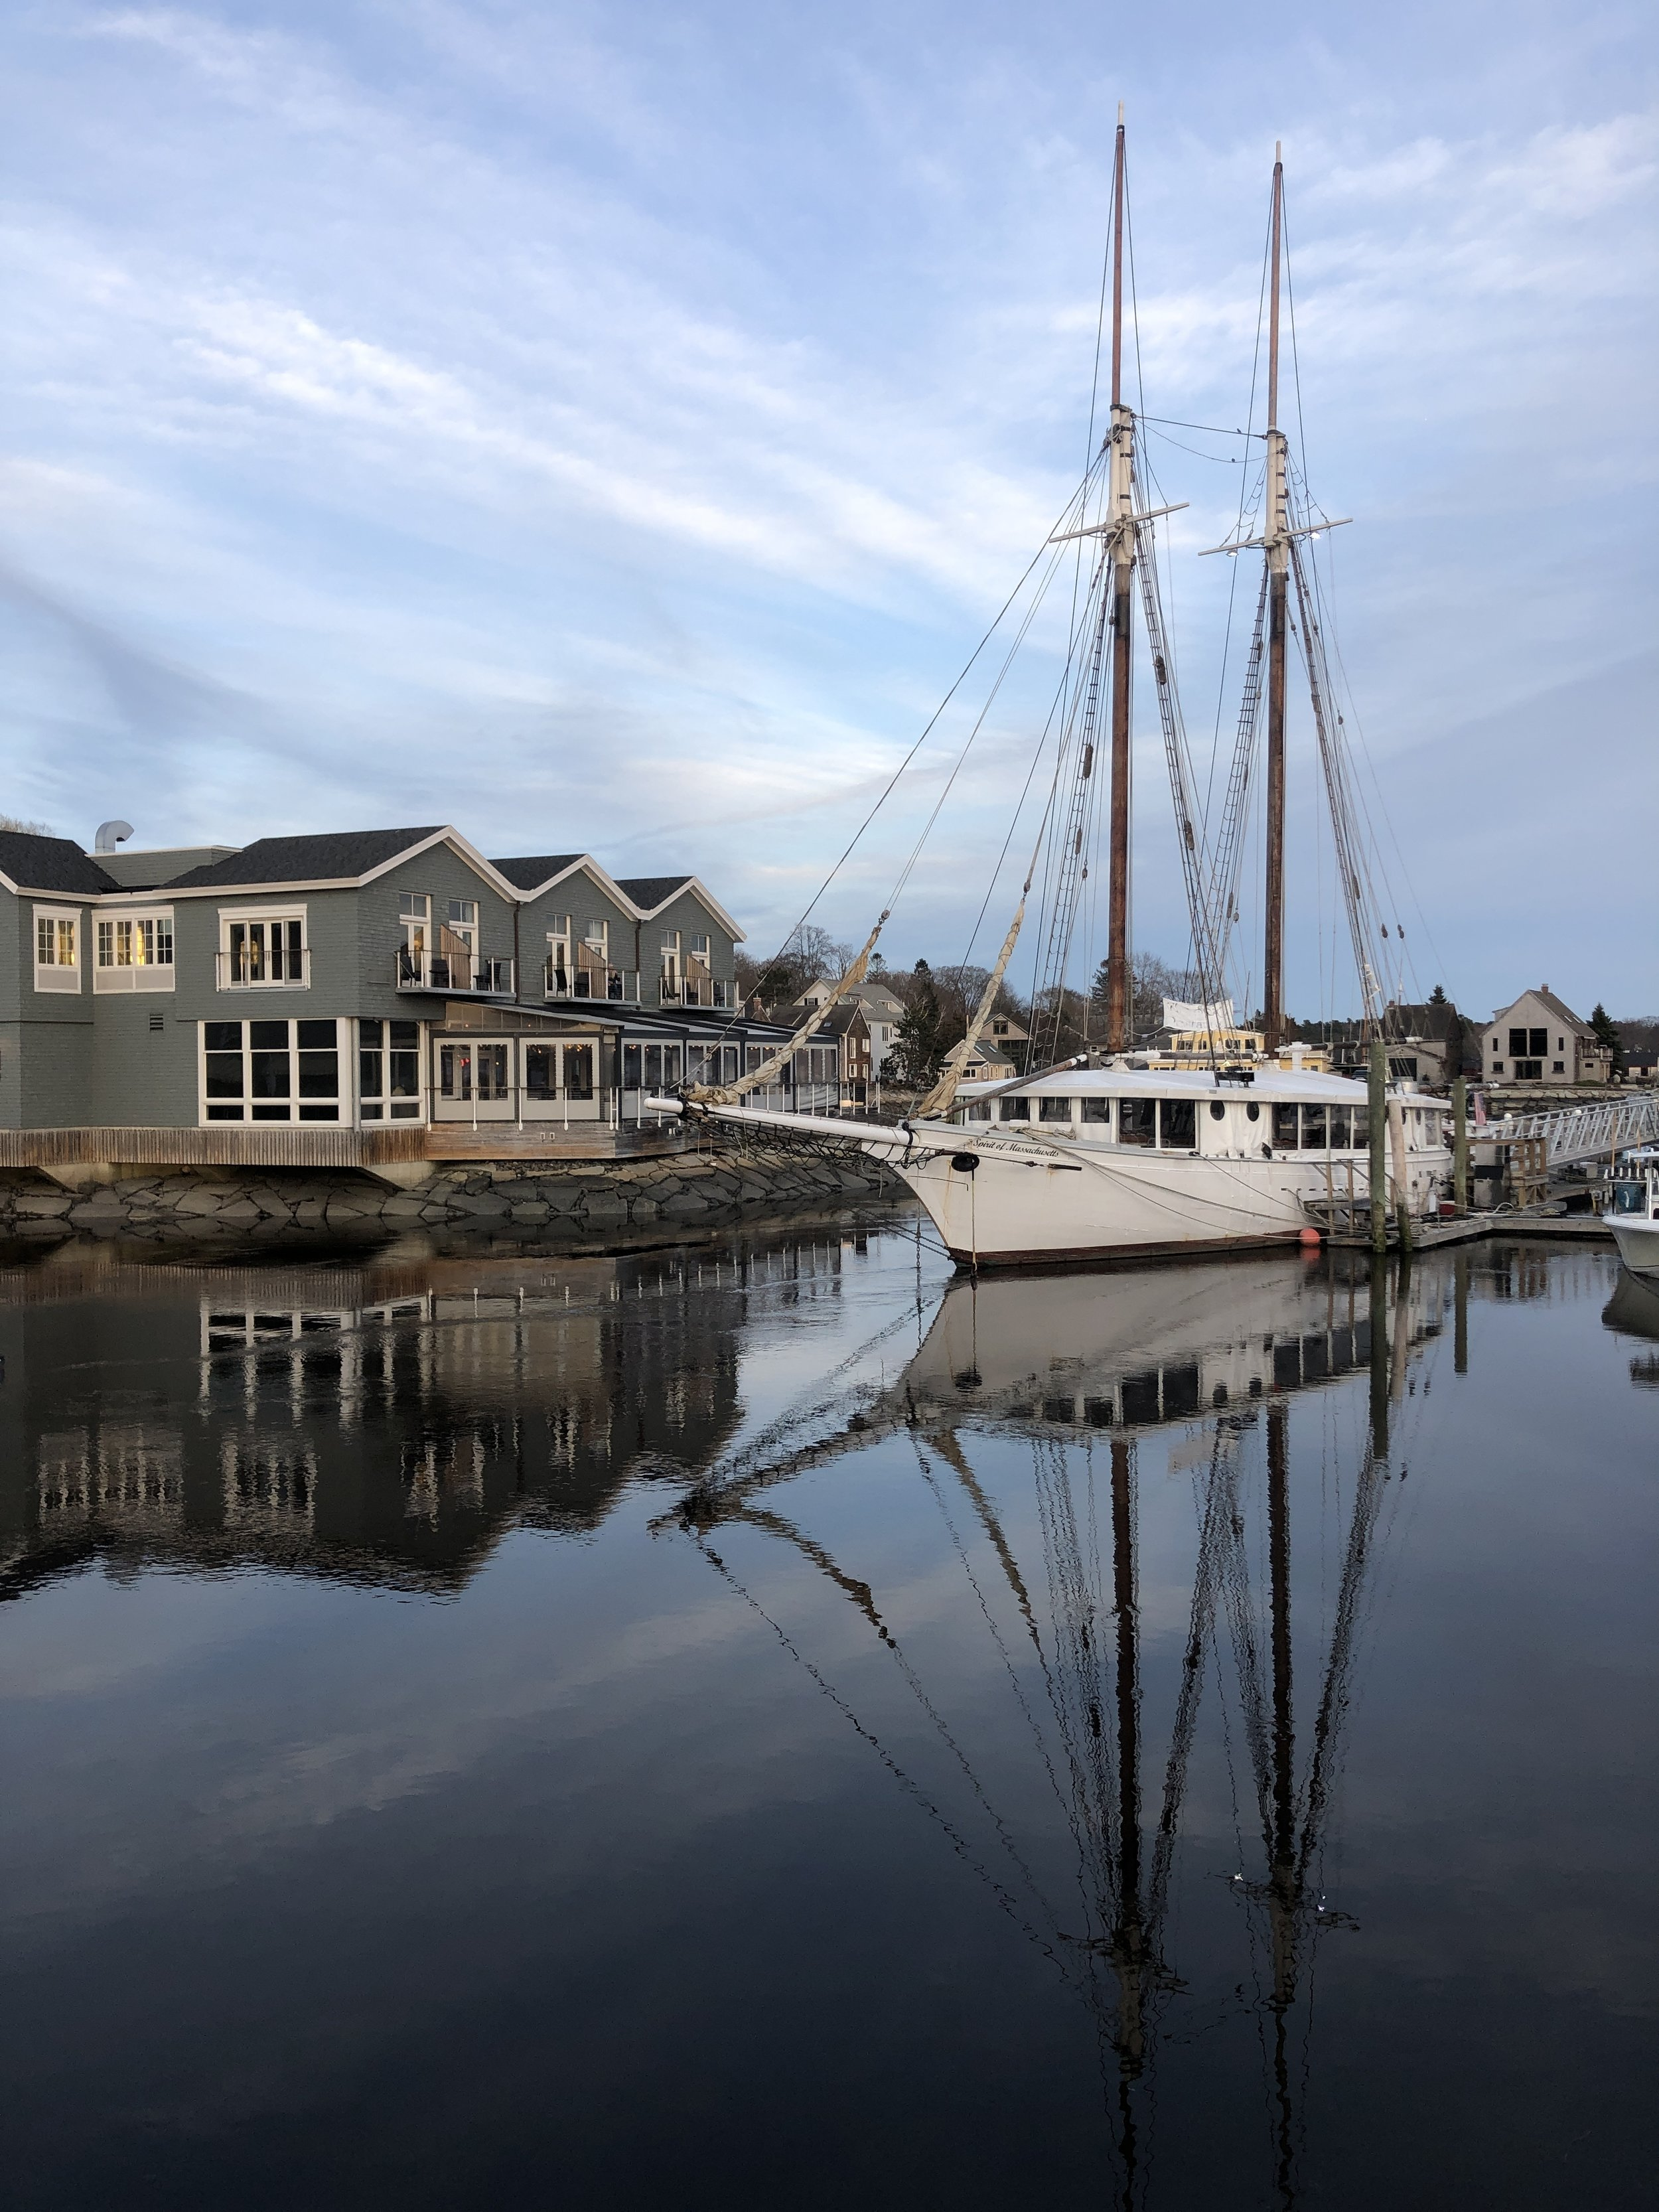 See Maine by train in 4 nights, Boathouse Restaurant, Kennebunkport